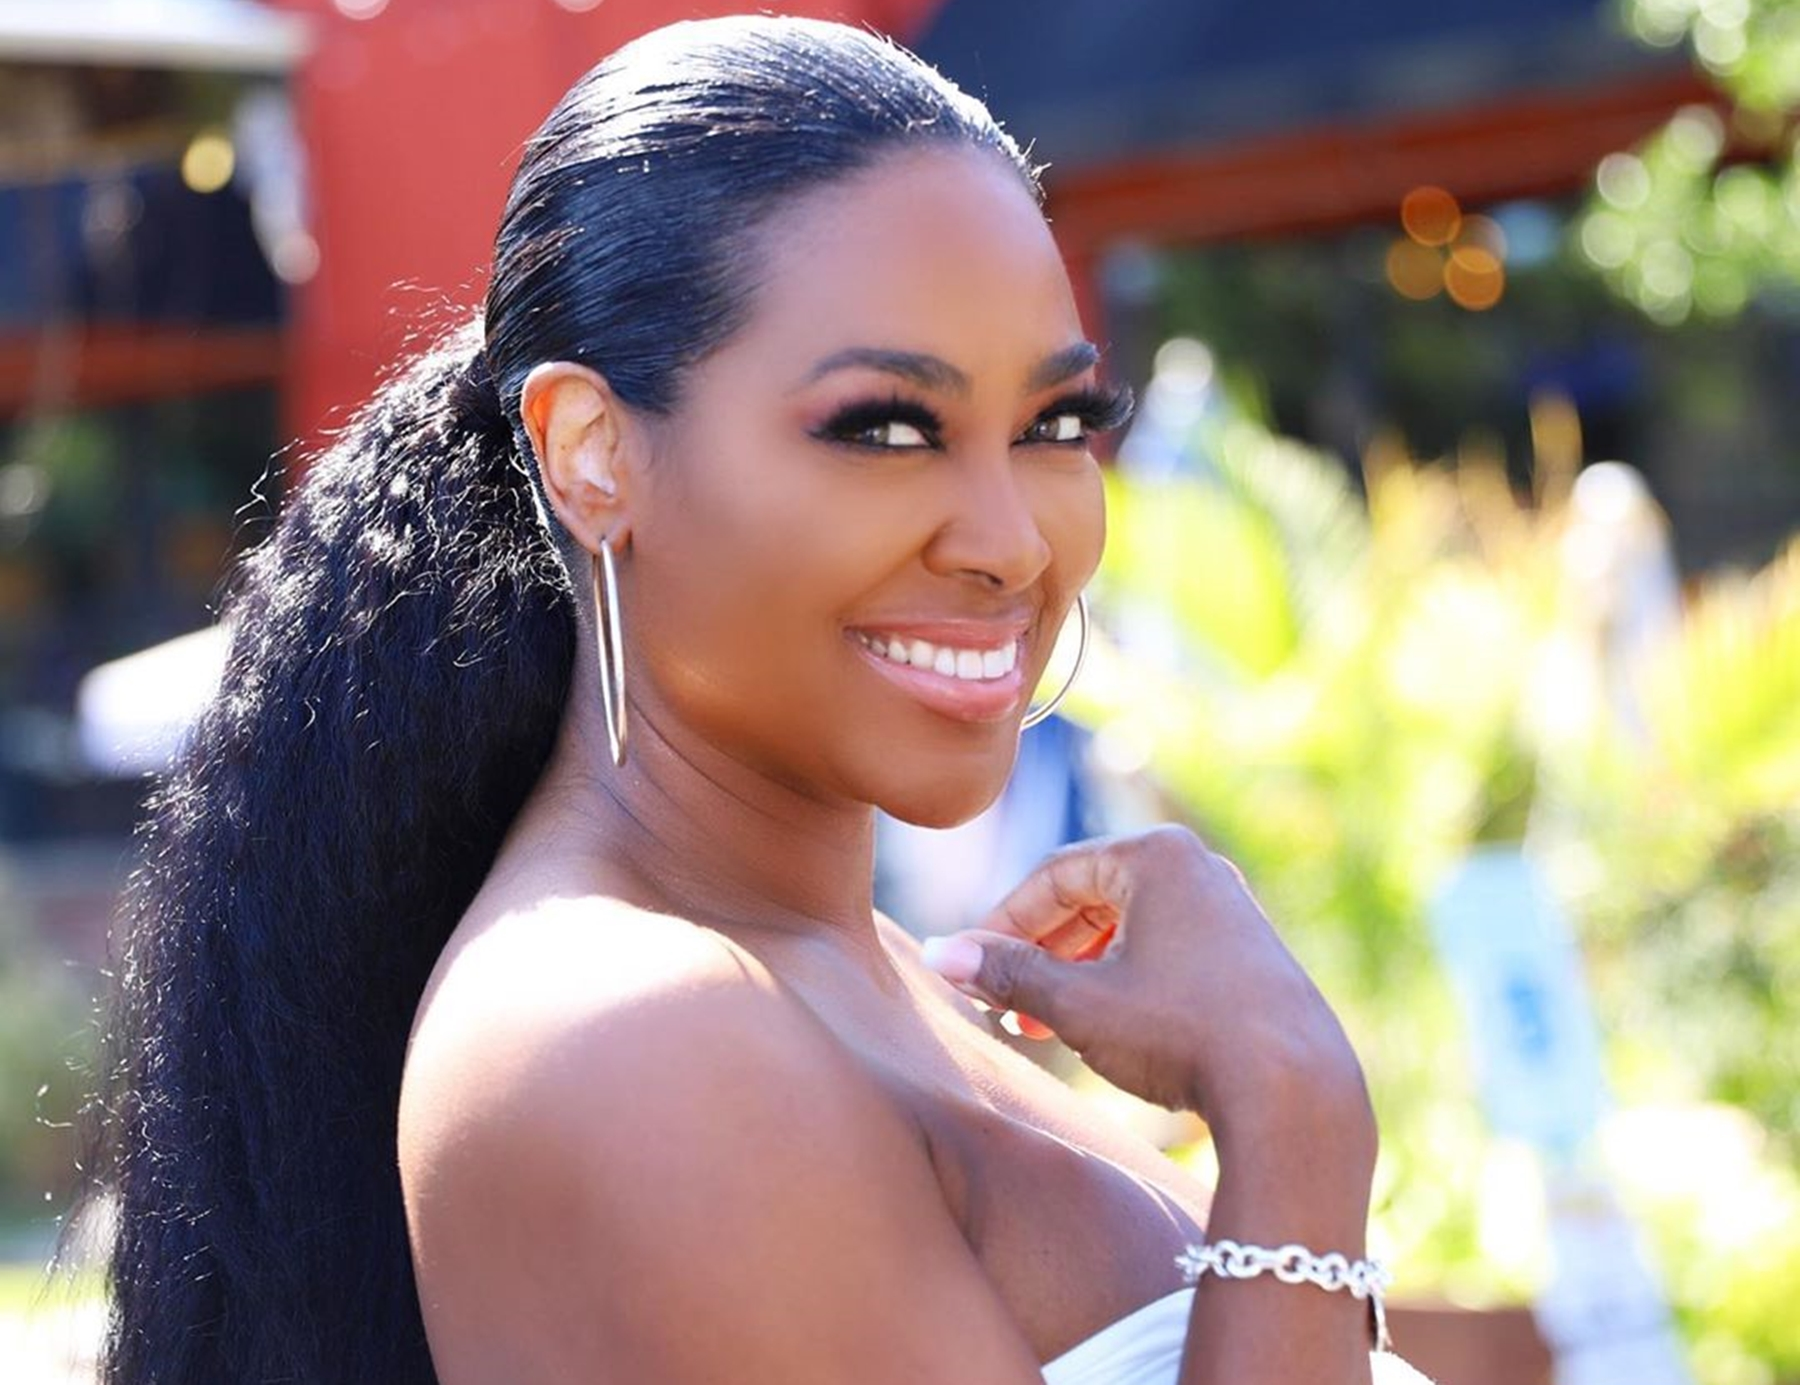 Kenya Moore Says Her And MarcDaly's Baby, Brooklyn Daly Will Be A Musician - See The Video